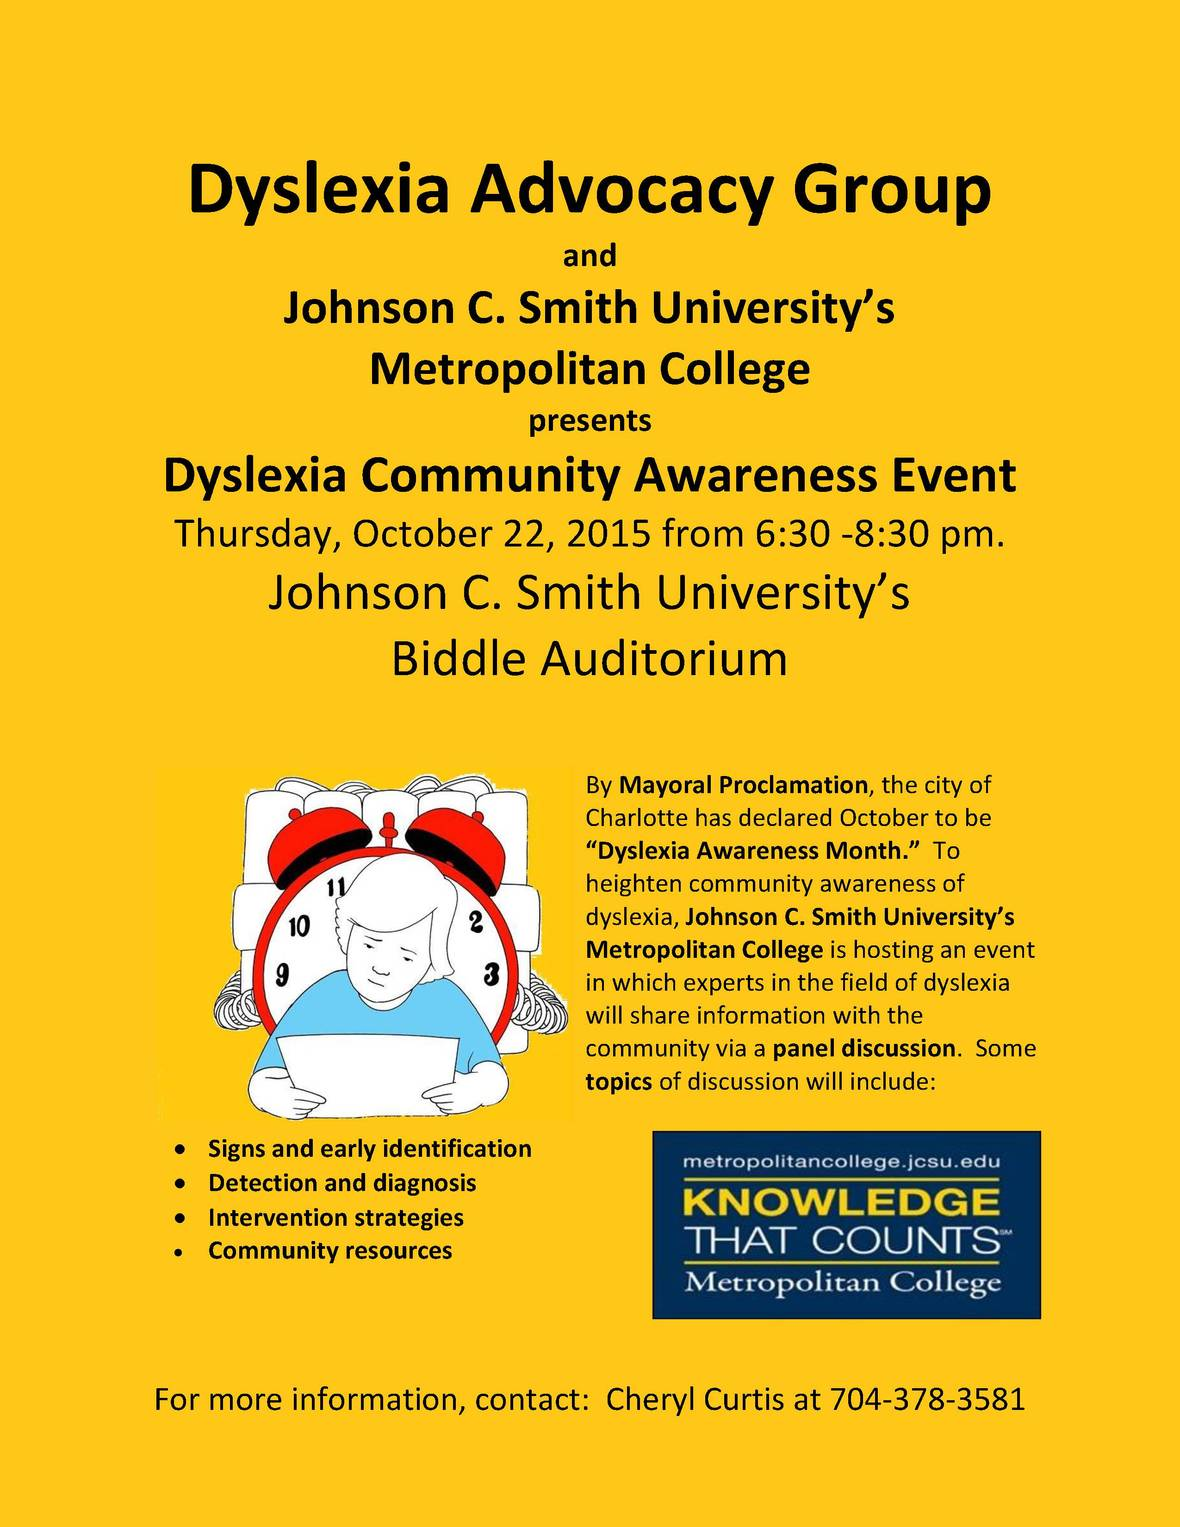 Dyslexia Advocacy Group Event